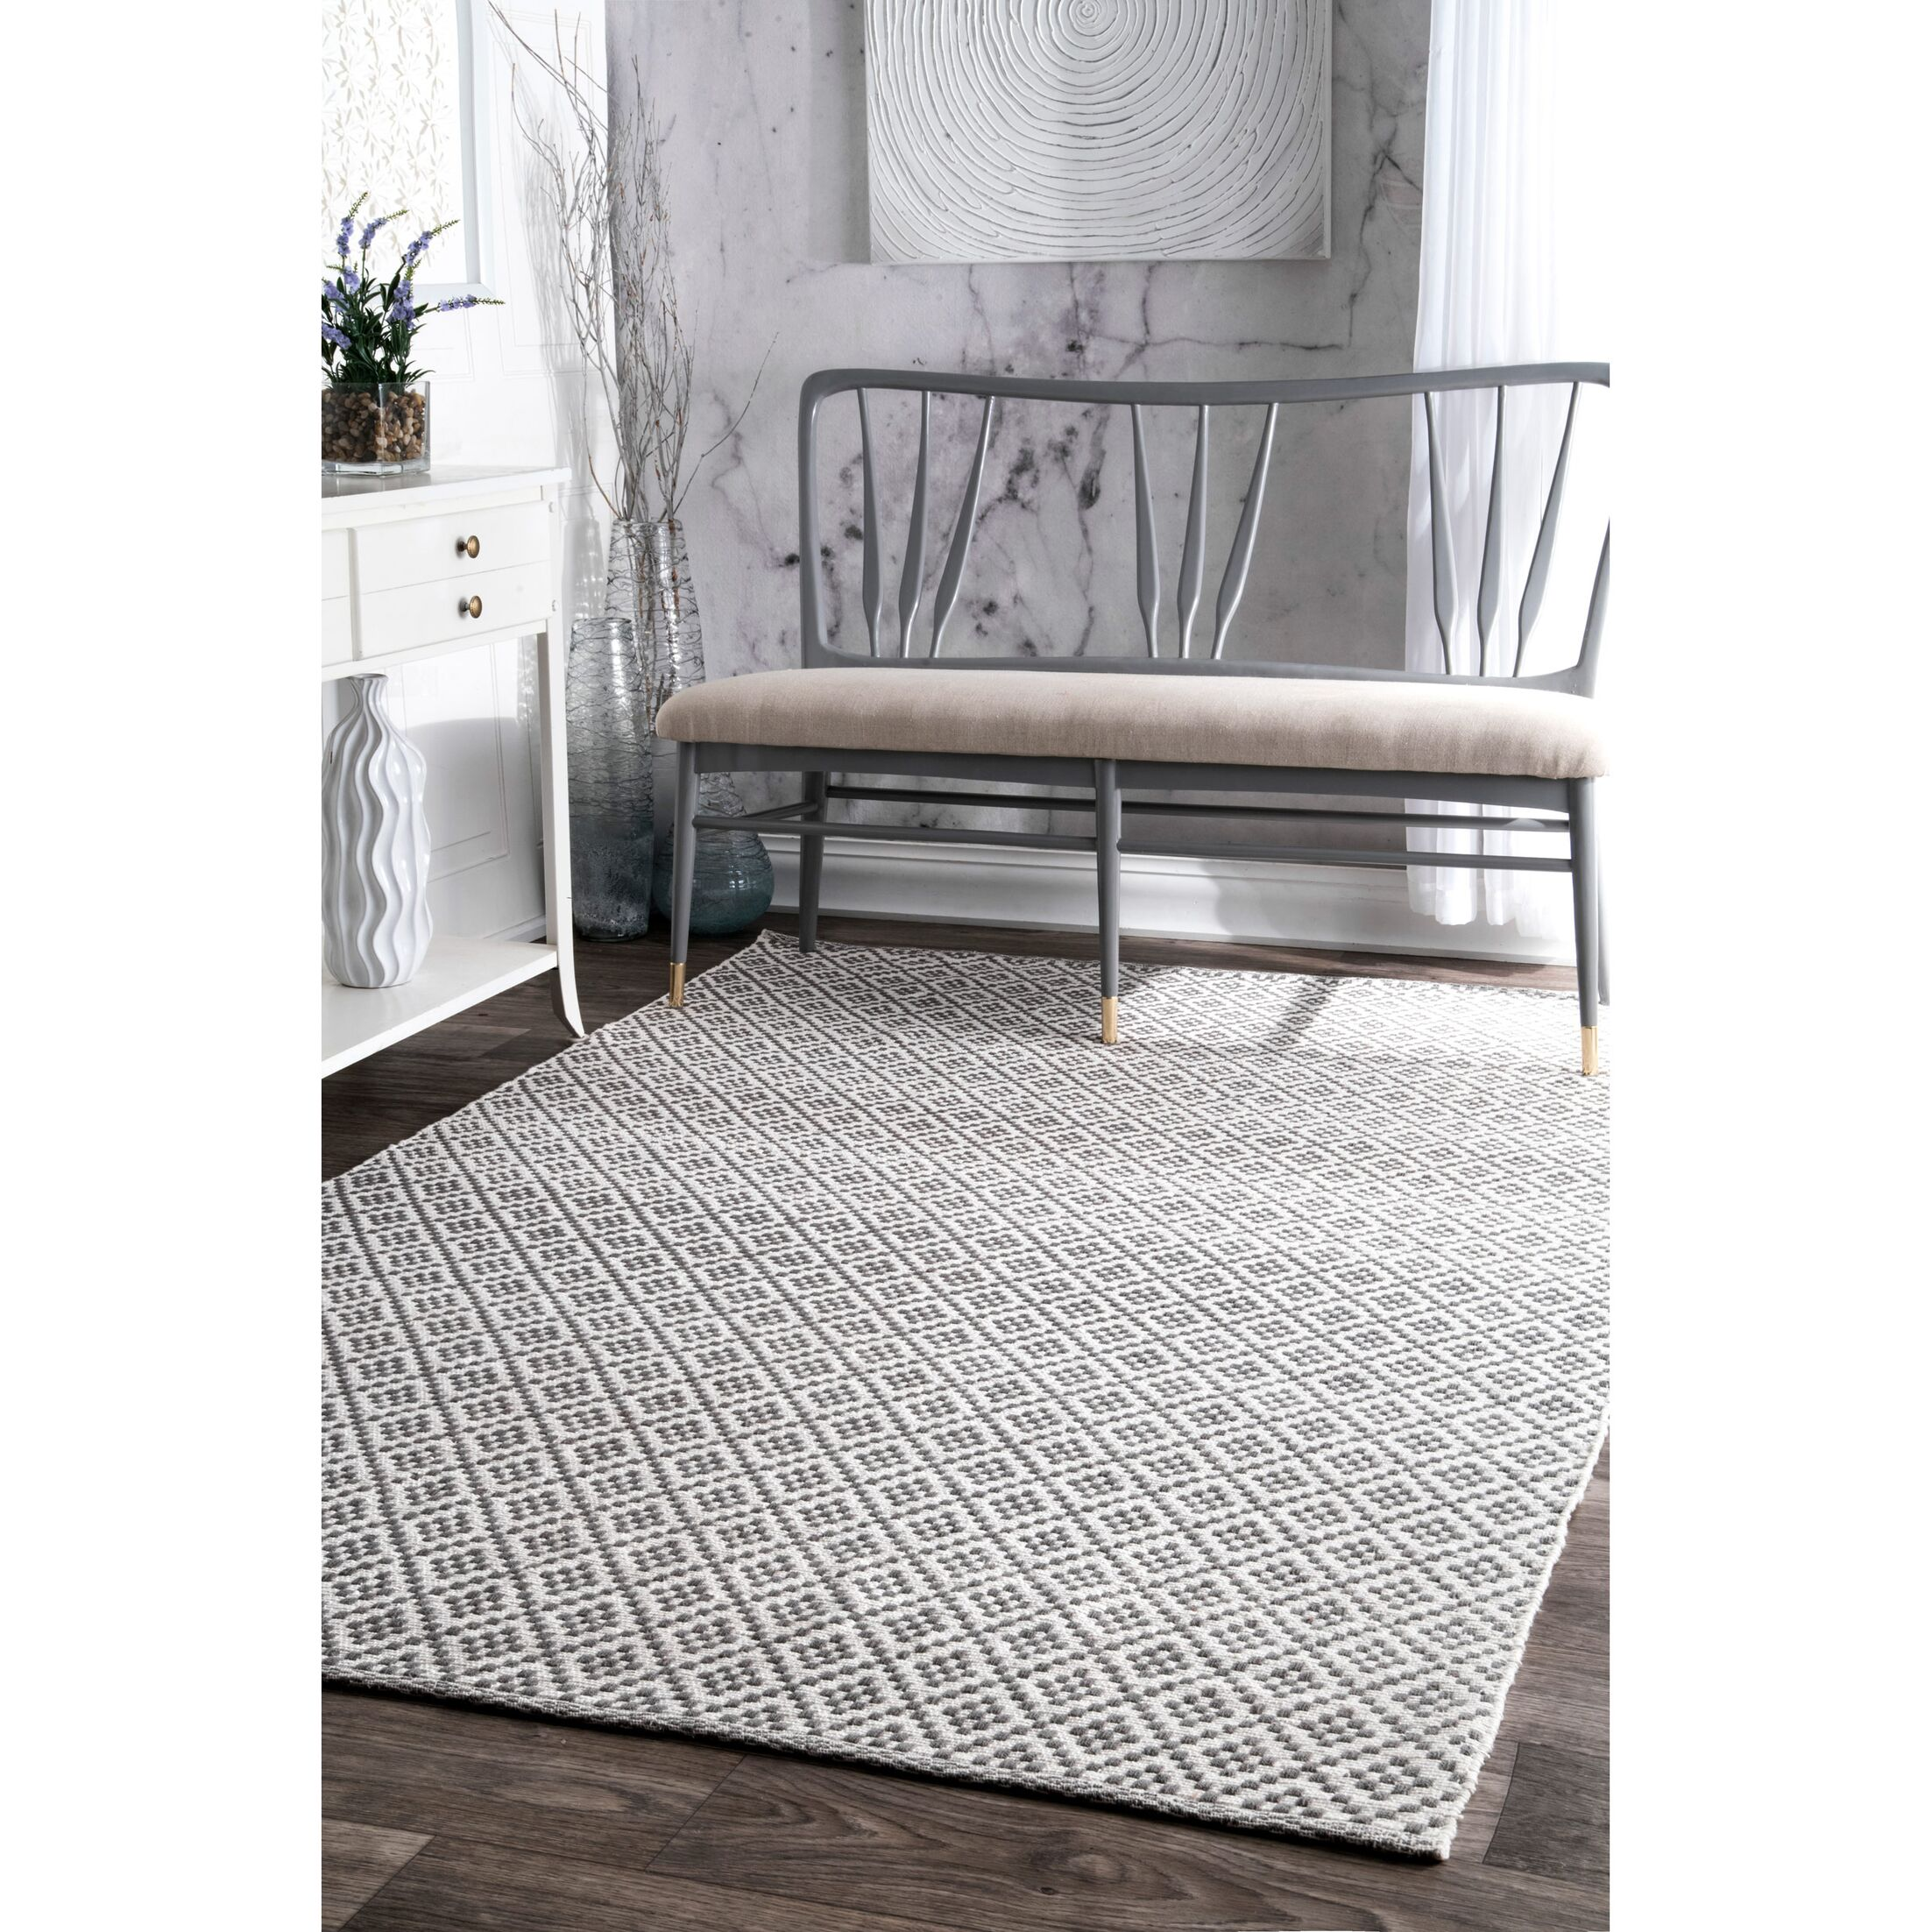 Malbrough Hand-Woven Cotton Beige/Ivory Area Rug Rug Size: Rectangle 4' x 6'